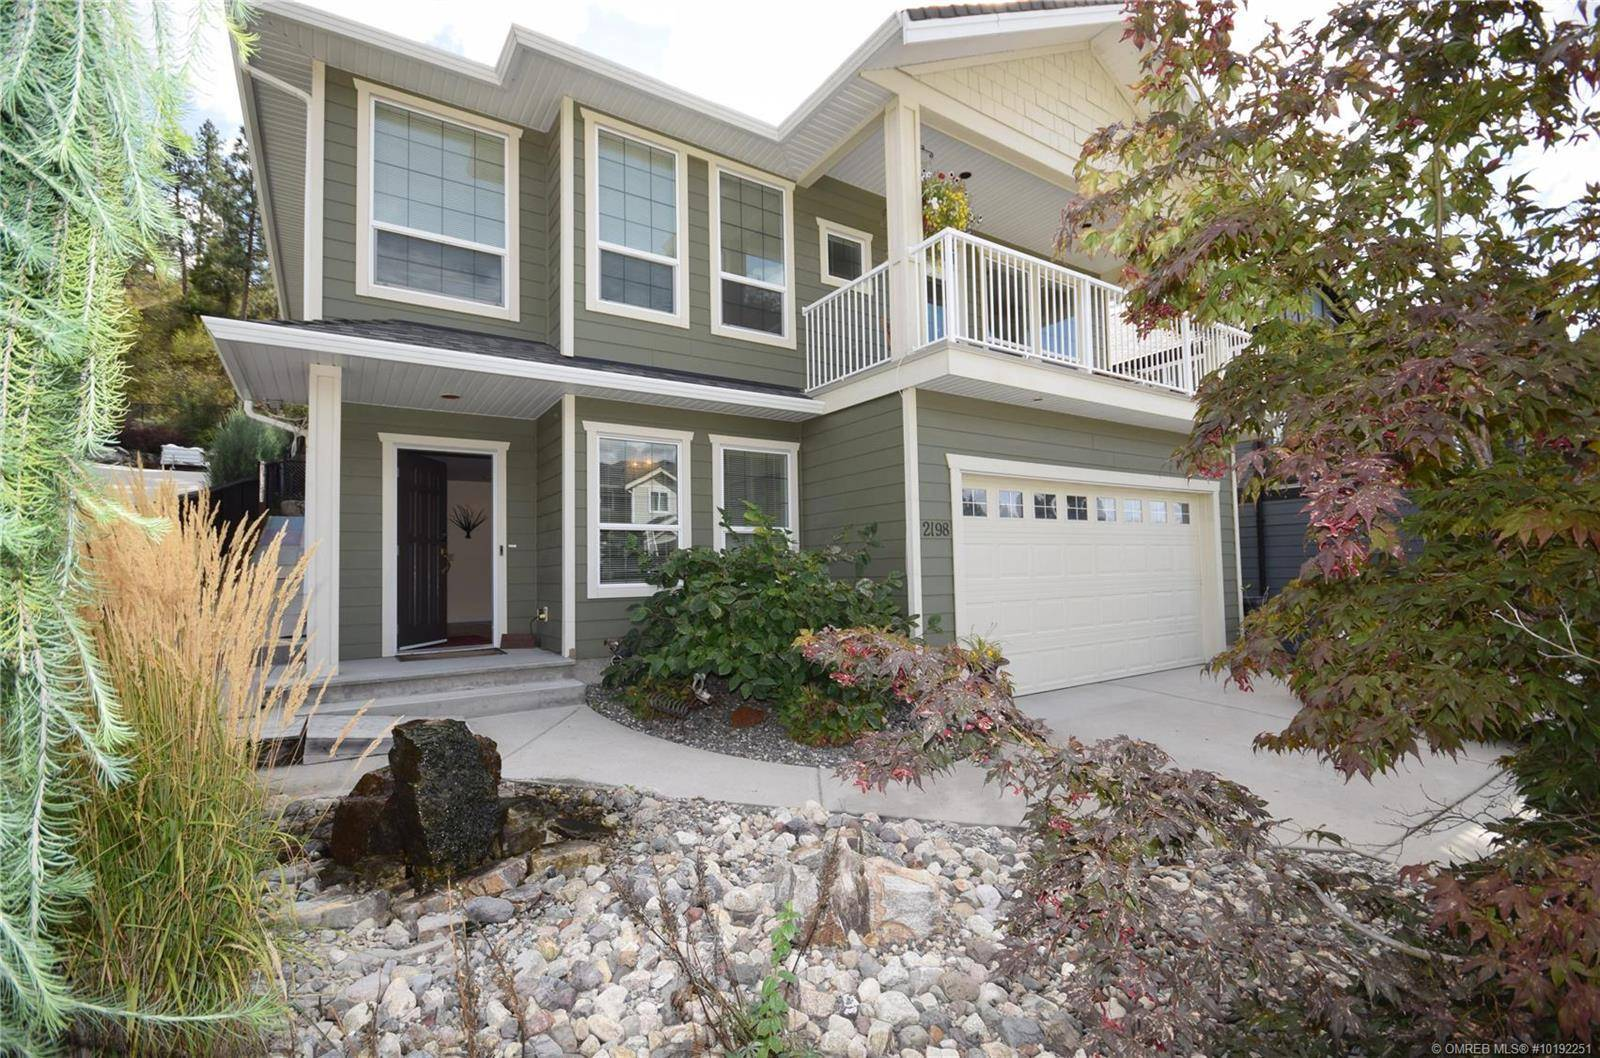 House for sale at 2198 Sunview Dr Kelowna British Columbia - MLS: 10192251